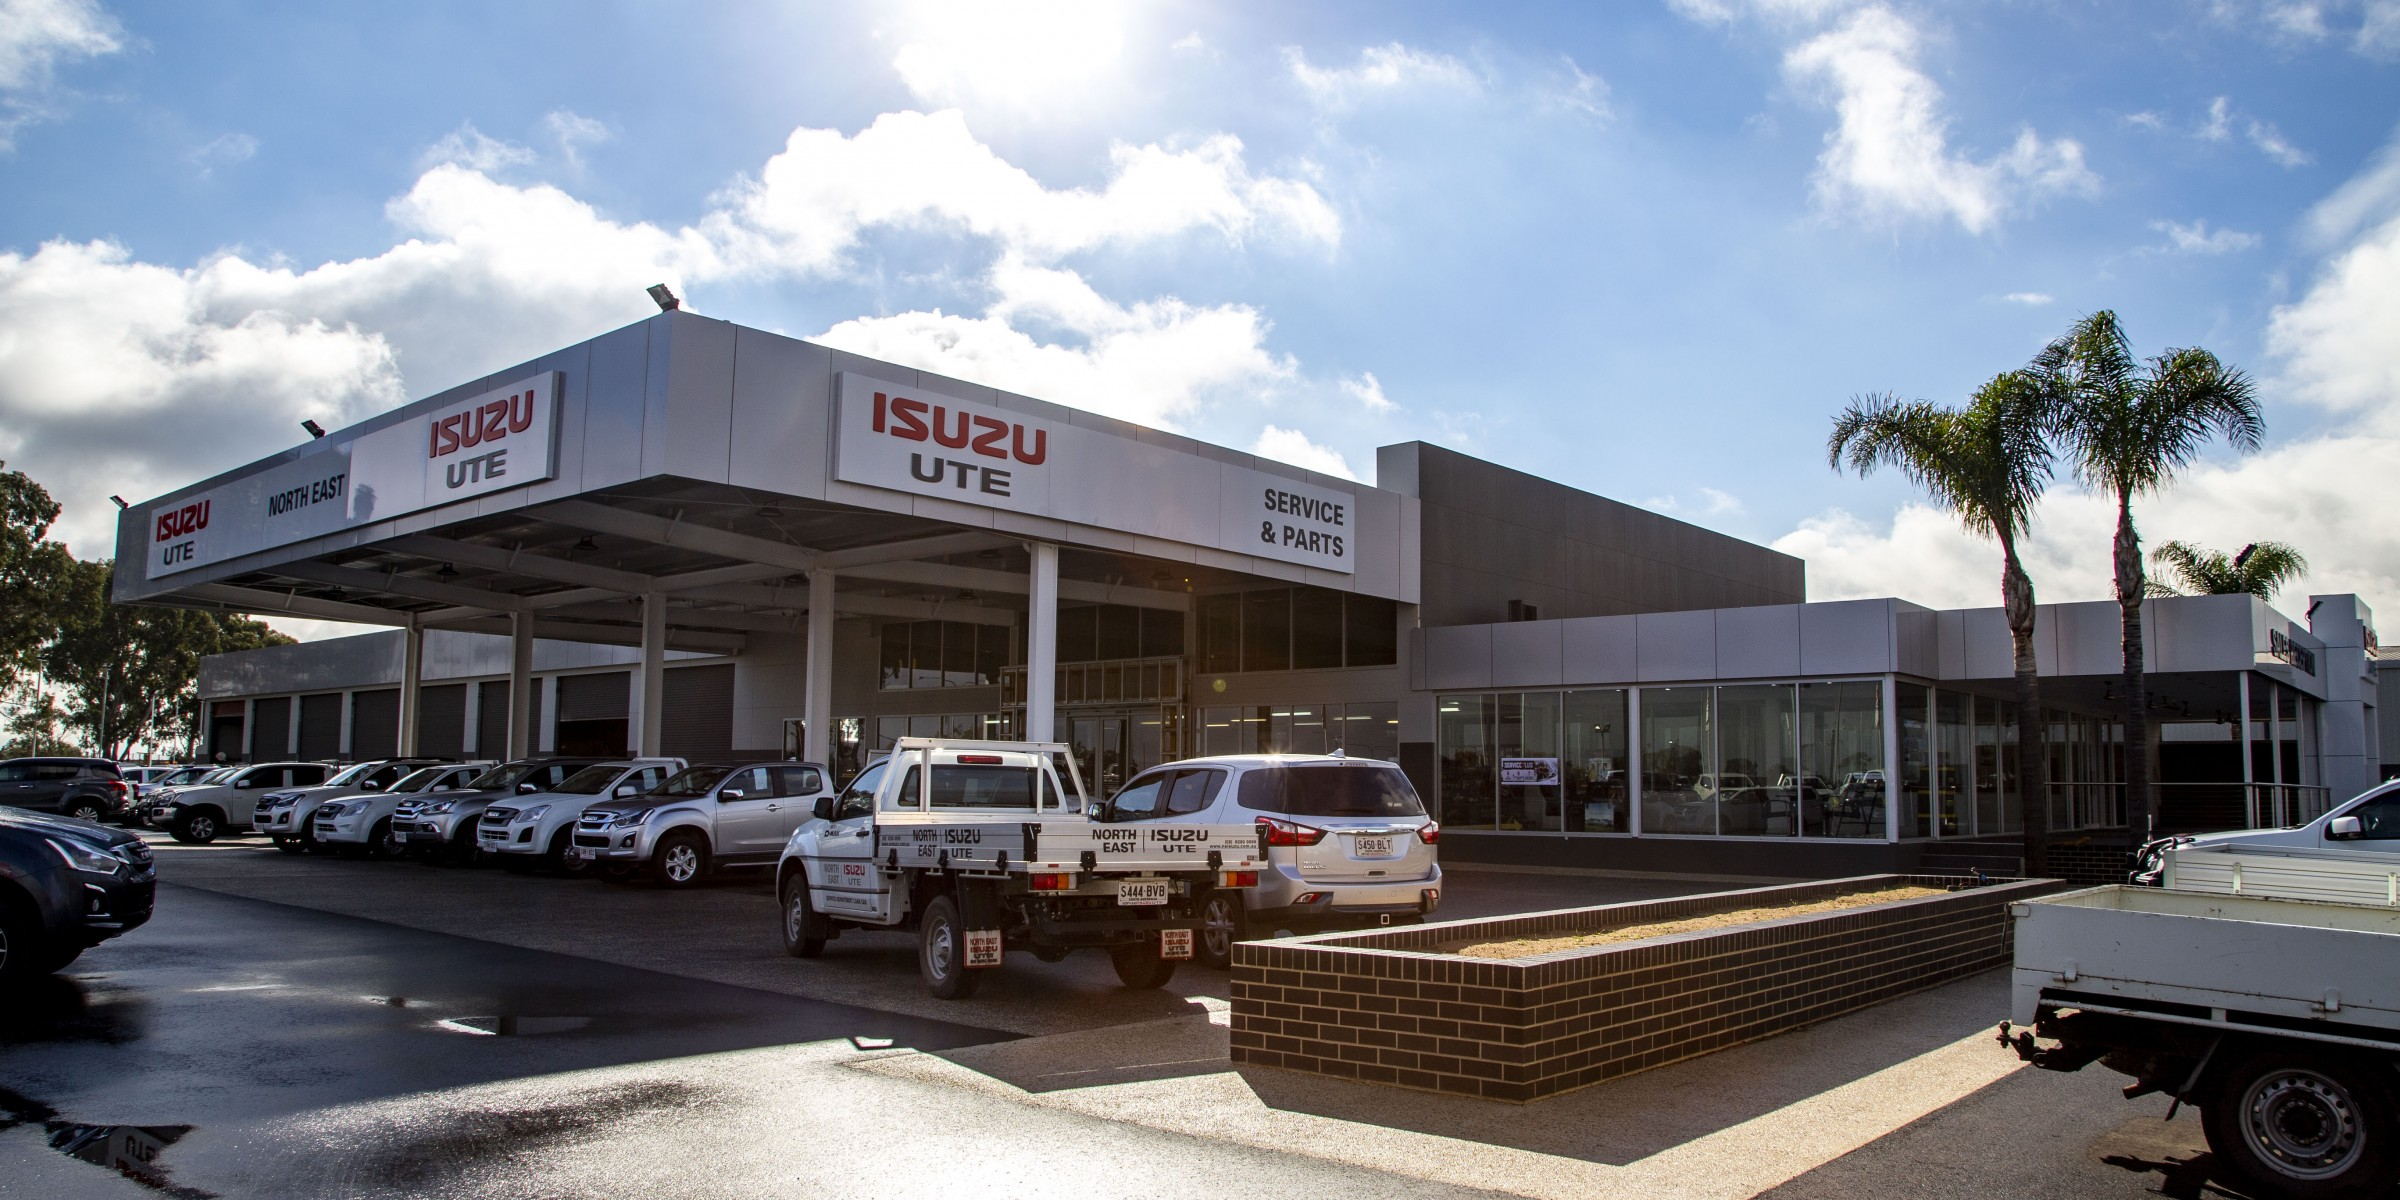 Isuzu Ute Commercial Architecture perspective